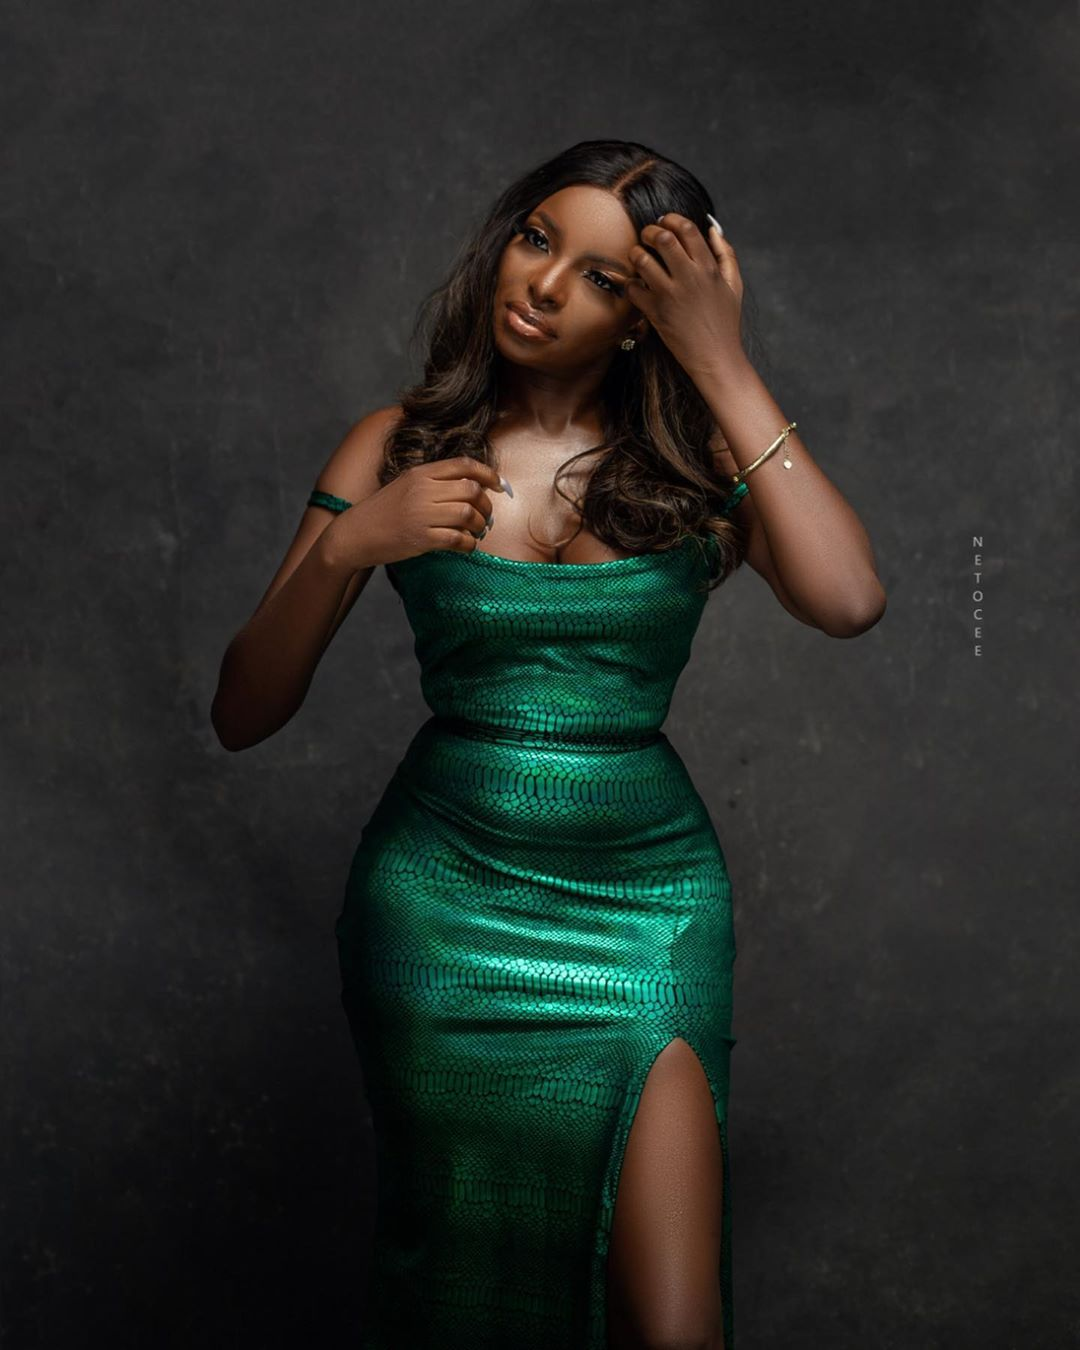 Cuppy Unveils Jewellry Line Cuppy Cuts in New Music